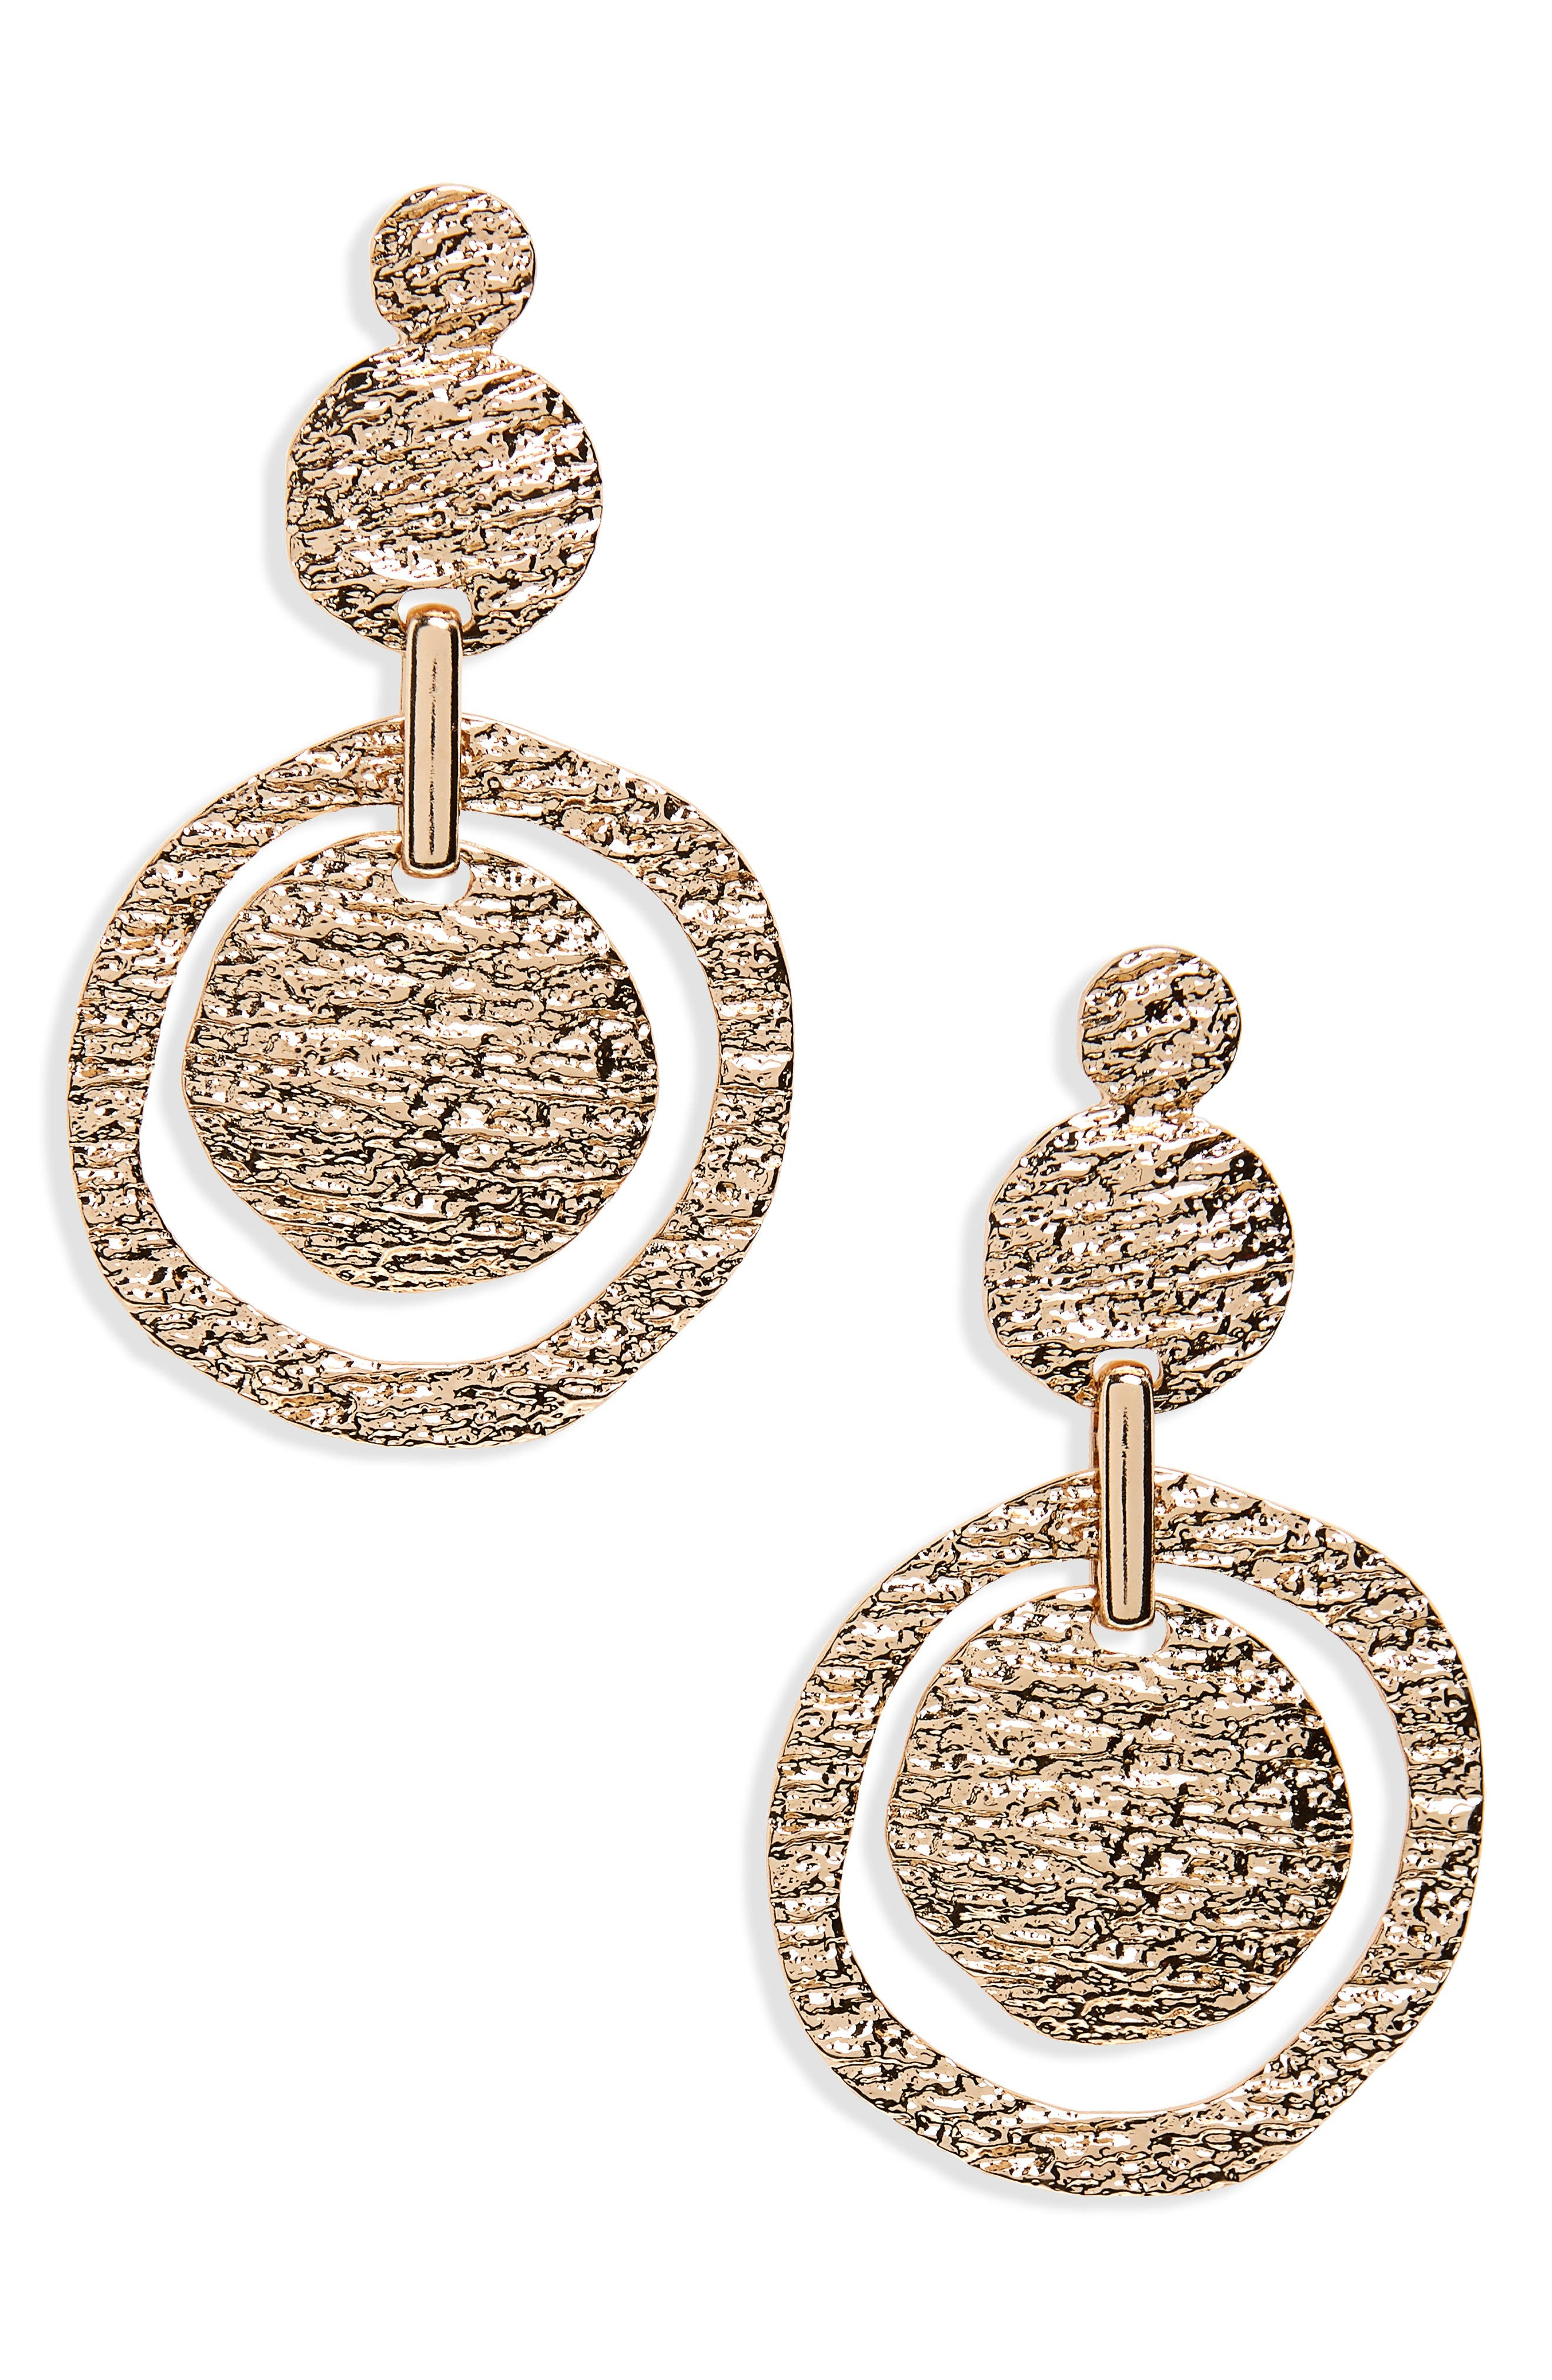 Molten Metal Statement Earrings,                             Main thumbnail 1, color,                             Gold